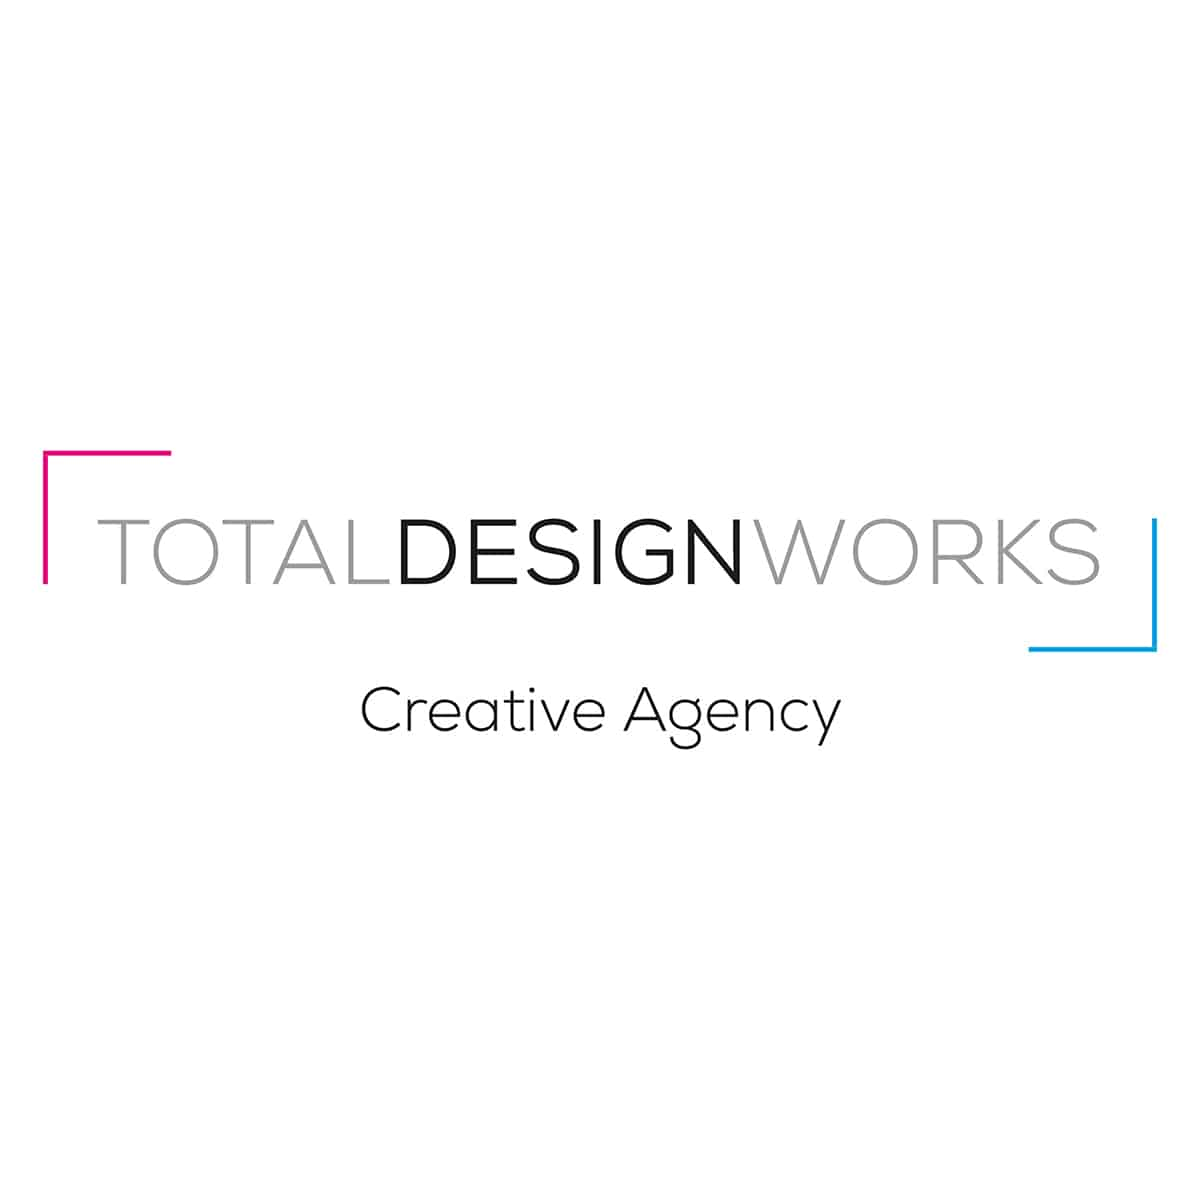 Total Design Works creative agency